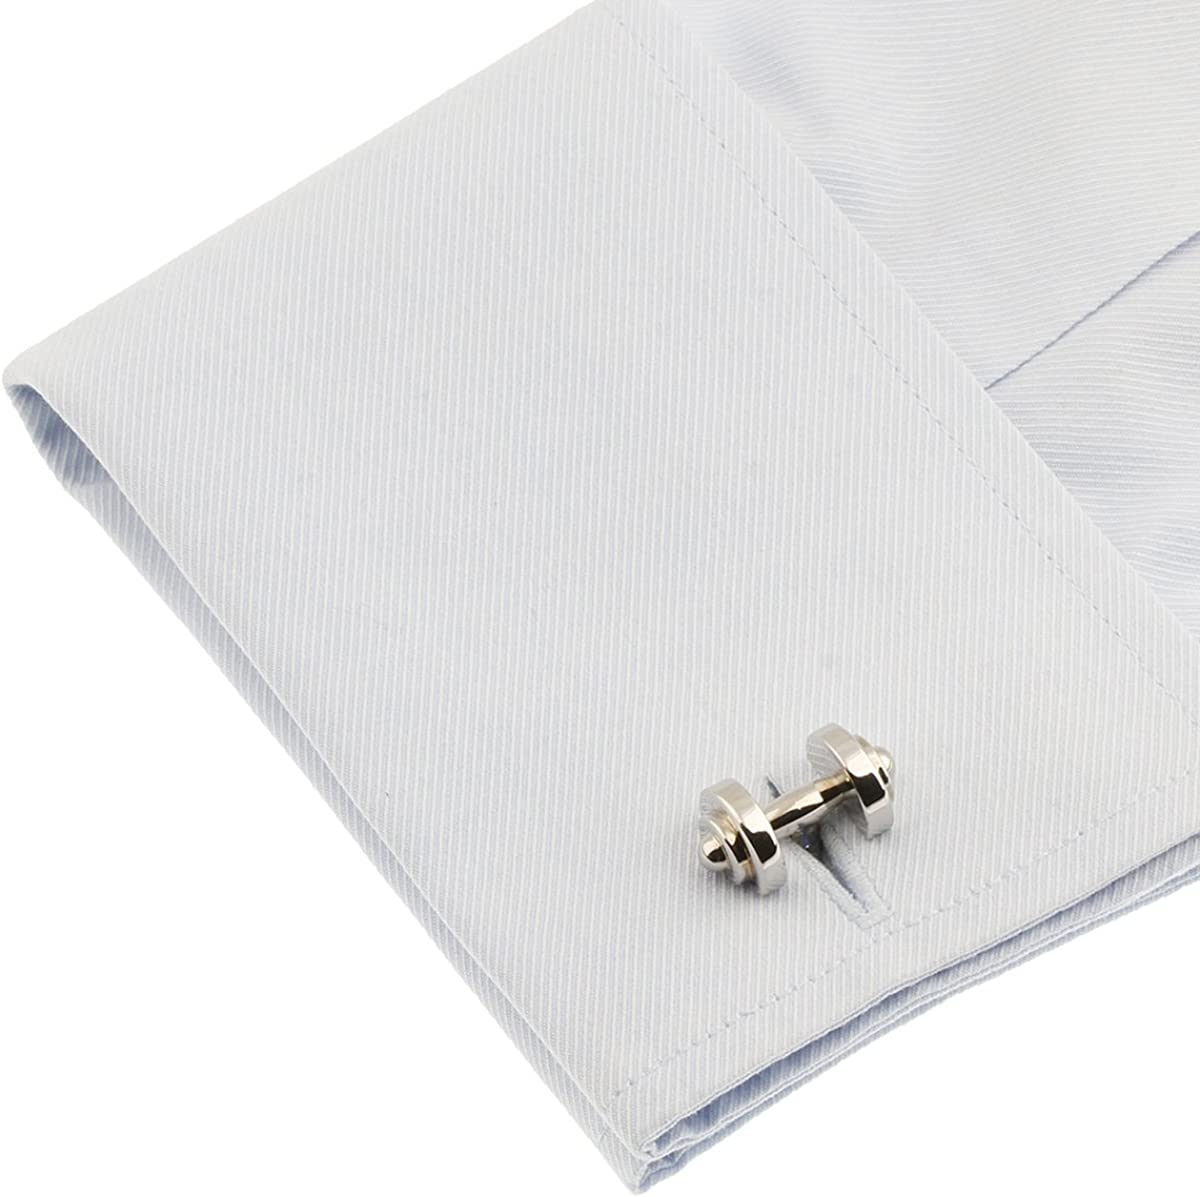 Dumbbell Cufflinks Barbell Weight Lifting Trainer Cross Fit Cuff Links